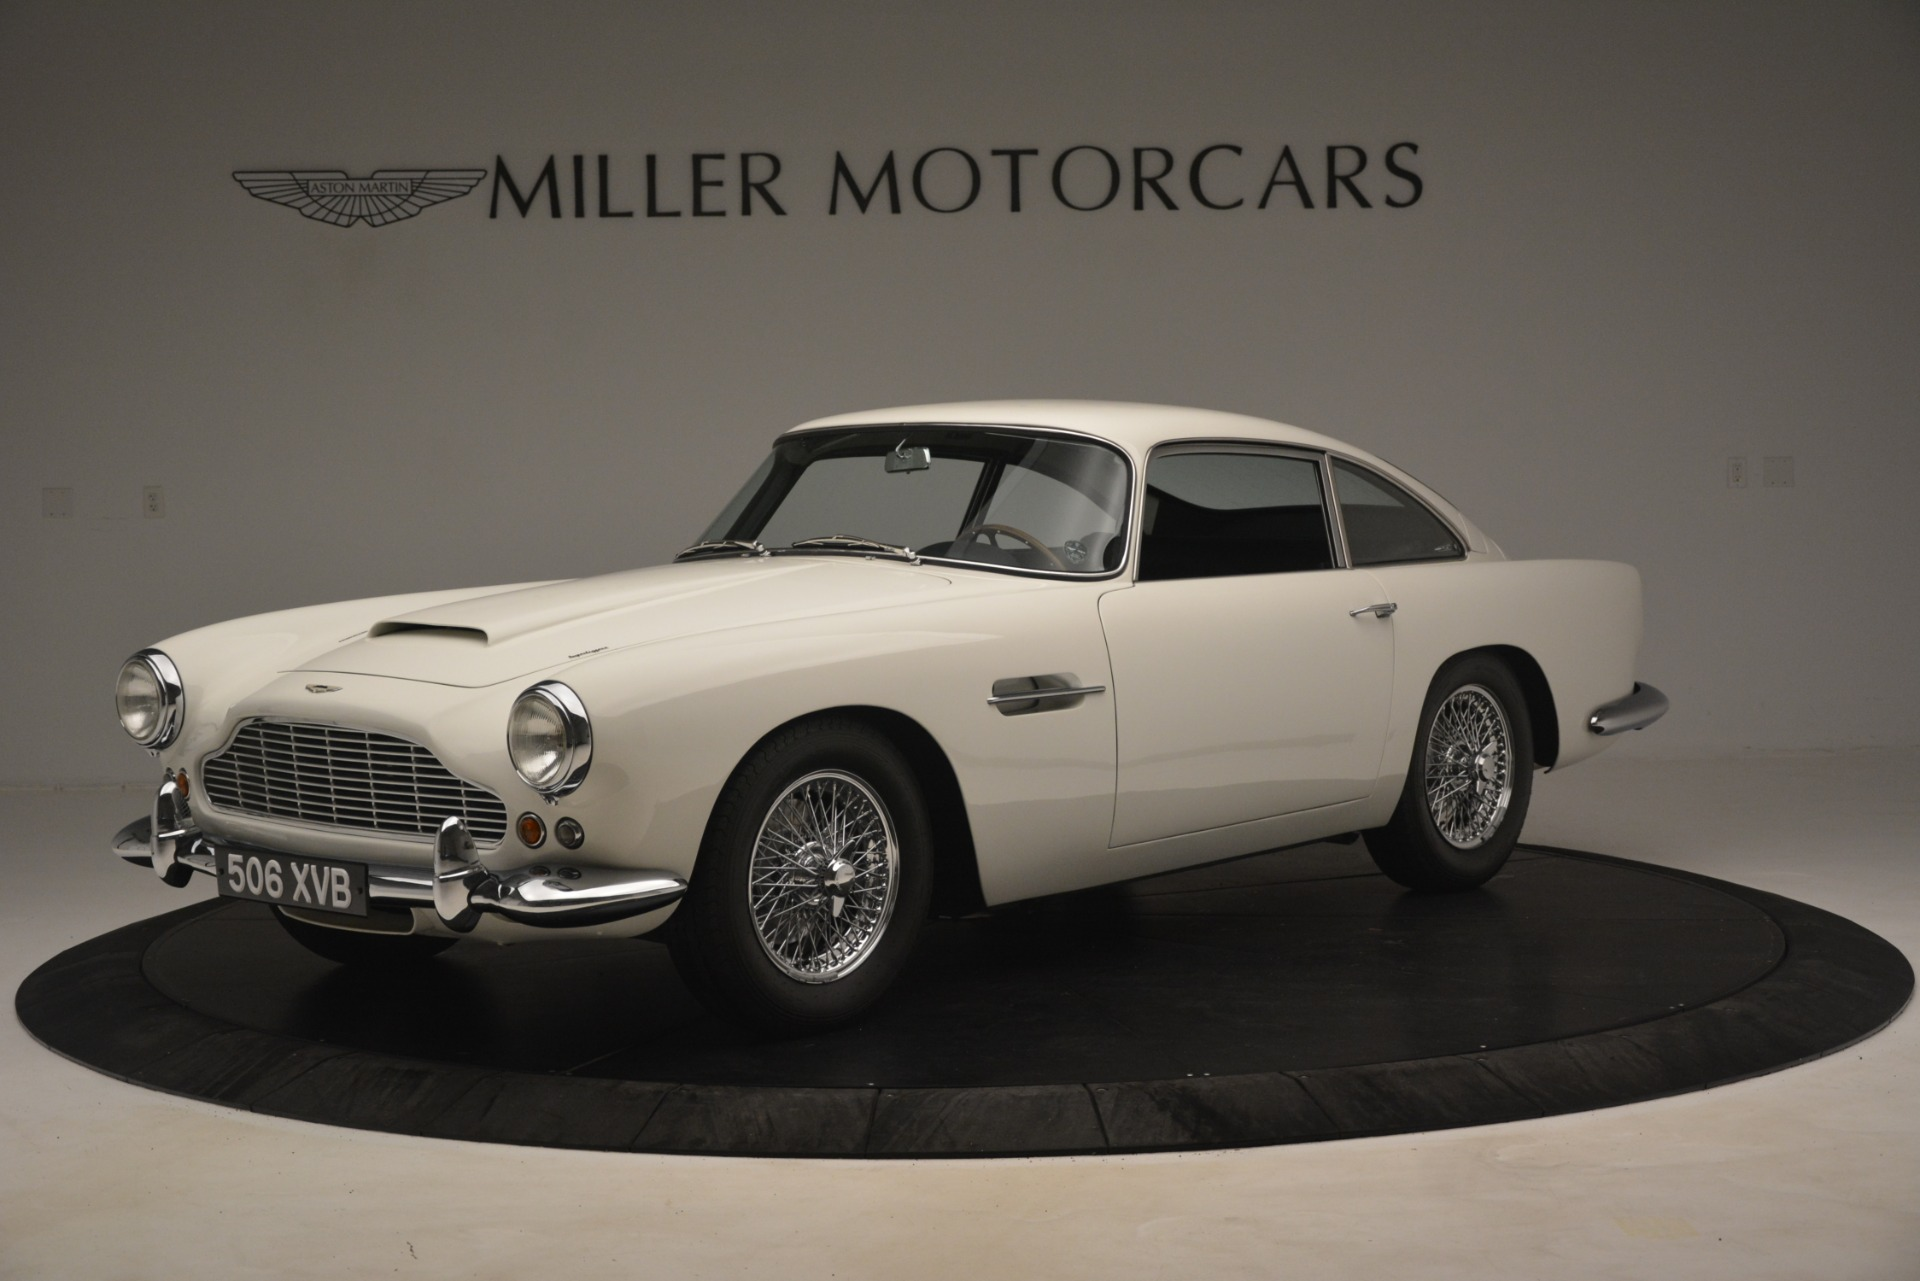 Used 1961 Aston Martin DB4 Series IV Coupe for sale $625,900 at Pagani of Greenwich in Greenwich CT 06830 1